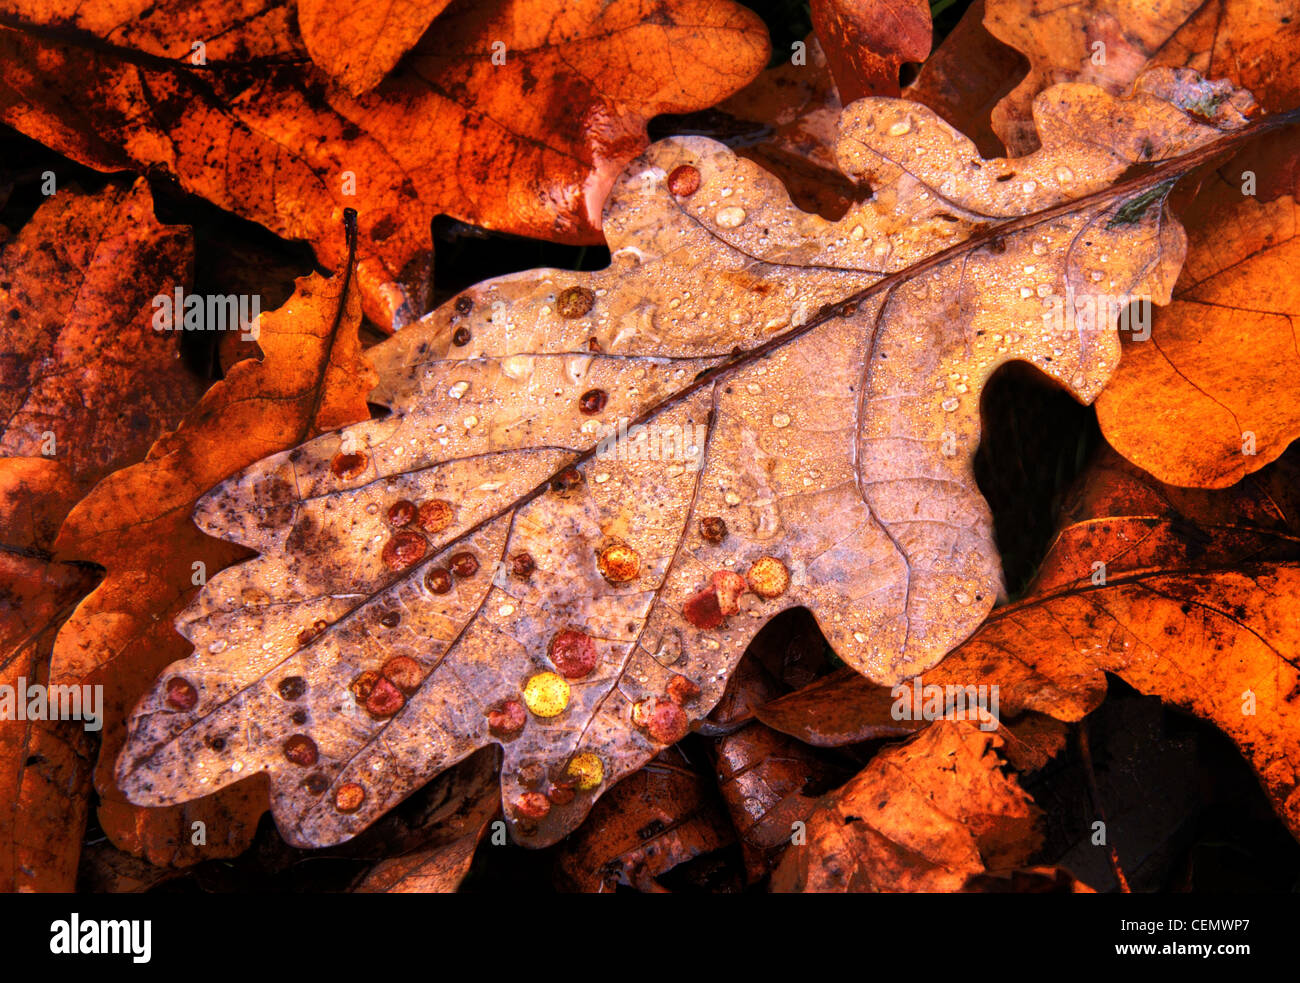 Common,Oak,Spangle,Gall,brown,leaf,leaves the fall,autumn,UK,England,gotonysmith,tree,plant,scrub,water,rain,droplets,Cheshire,wood,forest,floor,gotonysmith,Buy Pictures of,Buy Images Of